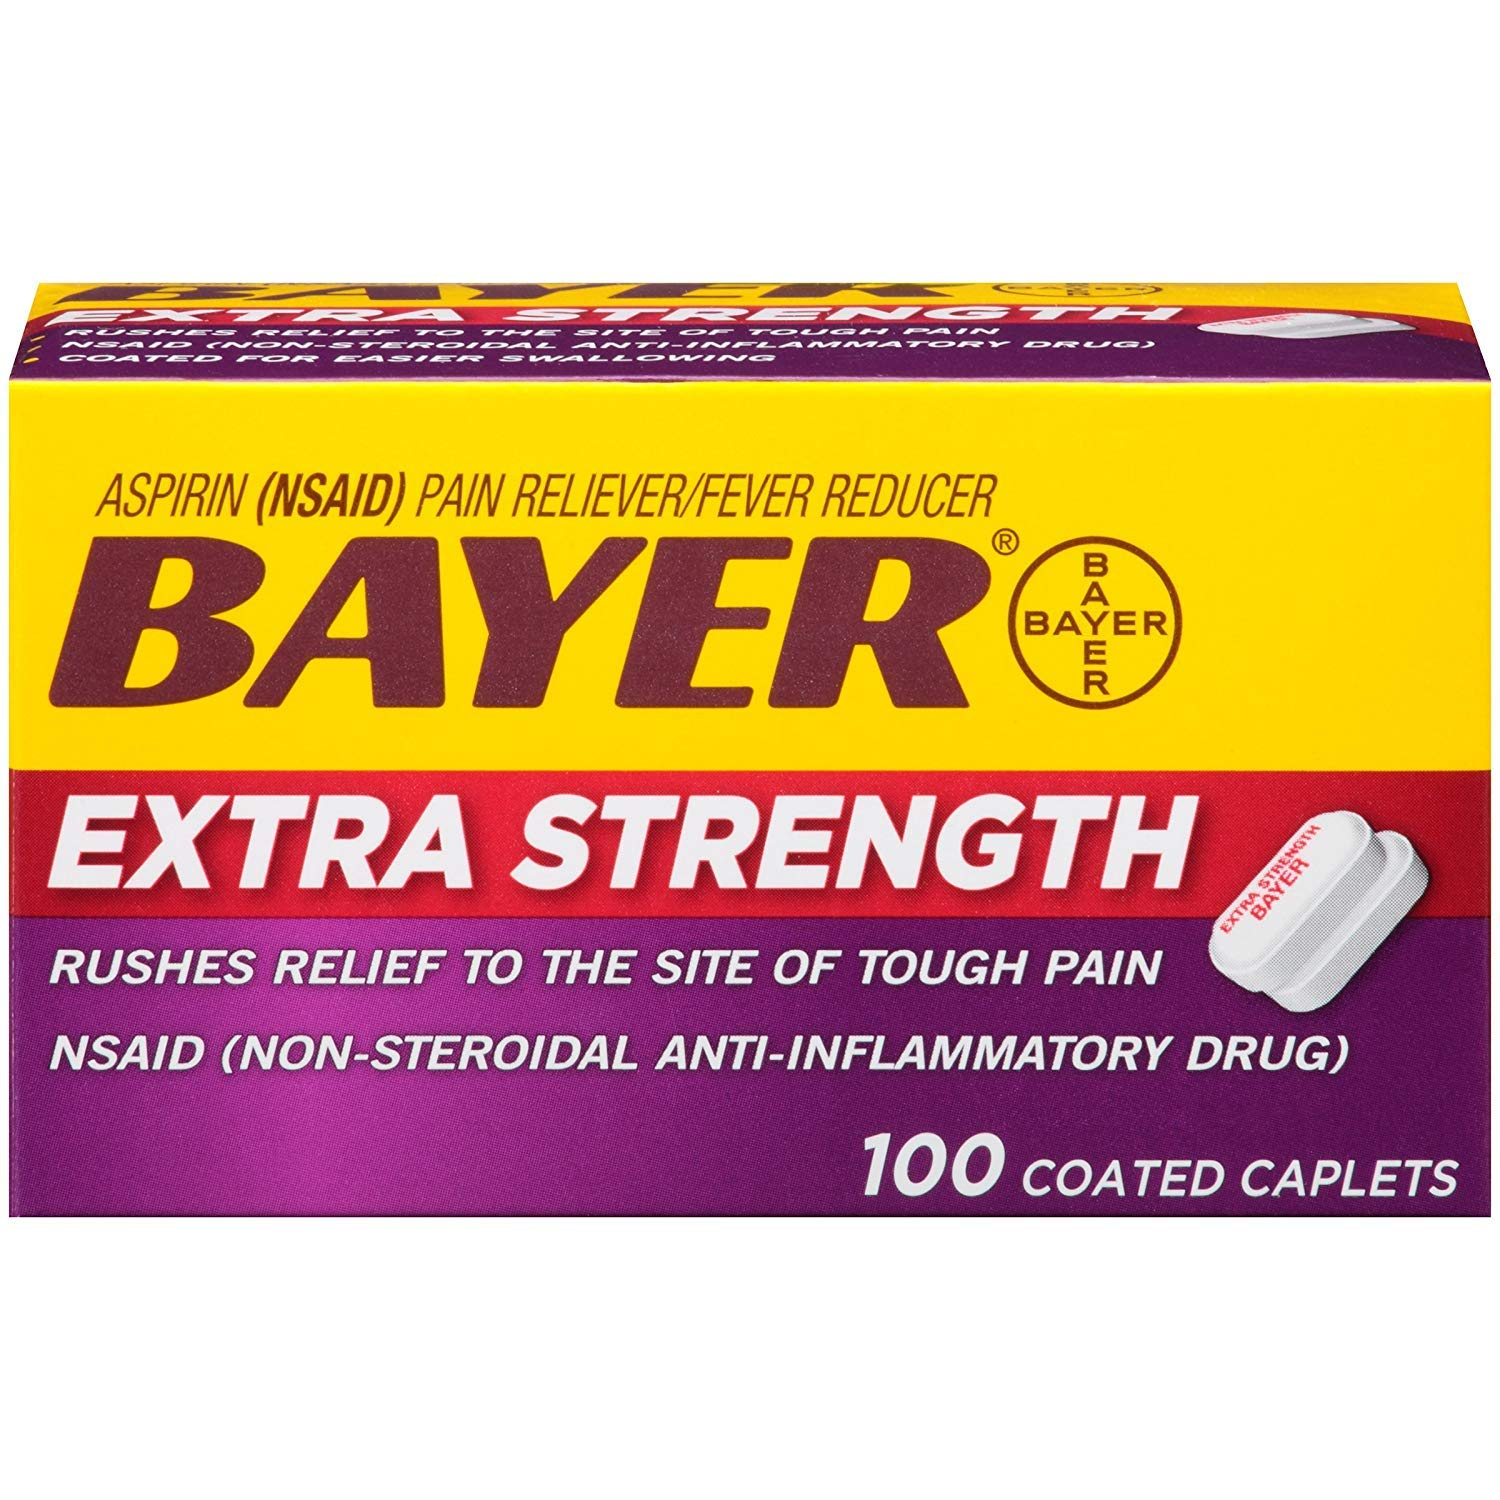 Bayer Extra Strength Aspirin Caplets - 100 Coated Caplets, Pack of 6 by Bayer